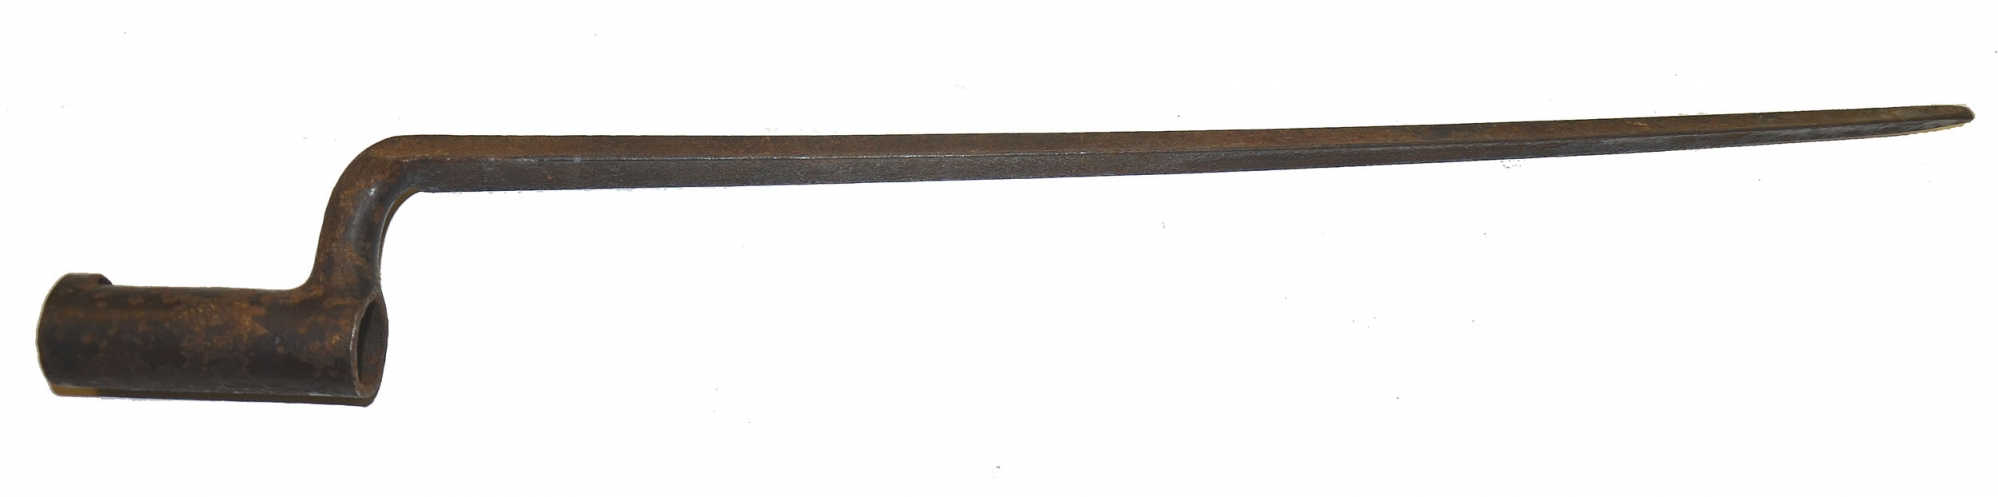 US MODEL 1816 BAYONET FROM FAMOUS GETTYSBURG COLLECTION